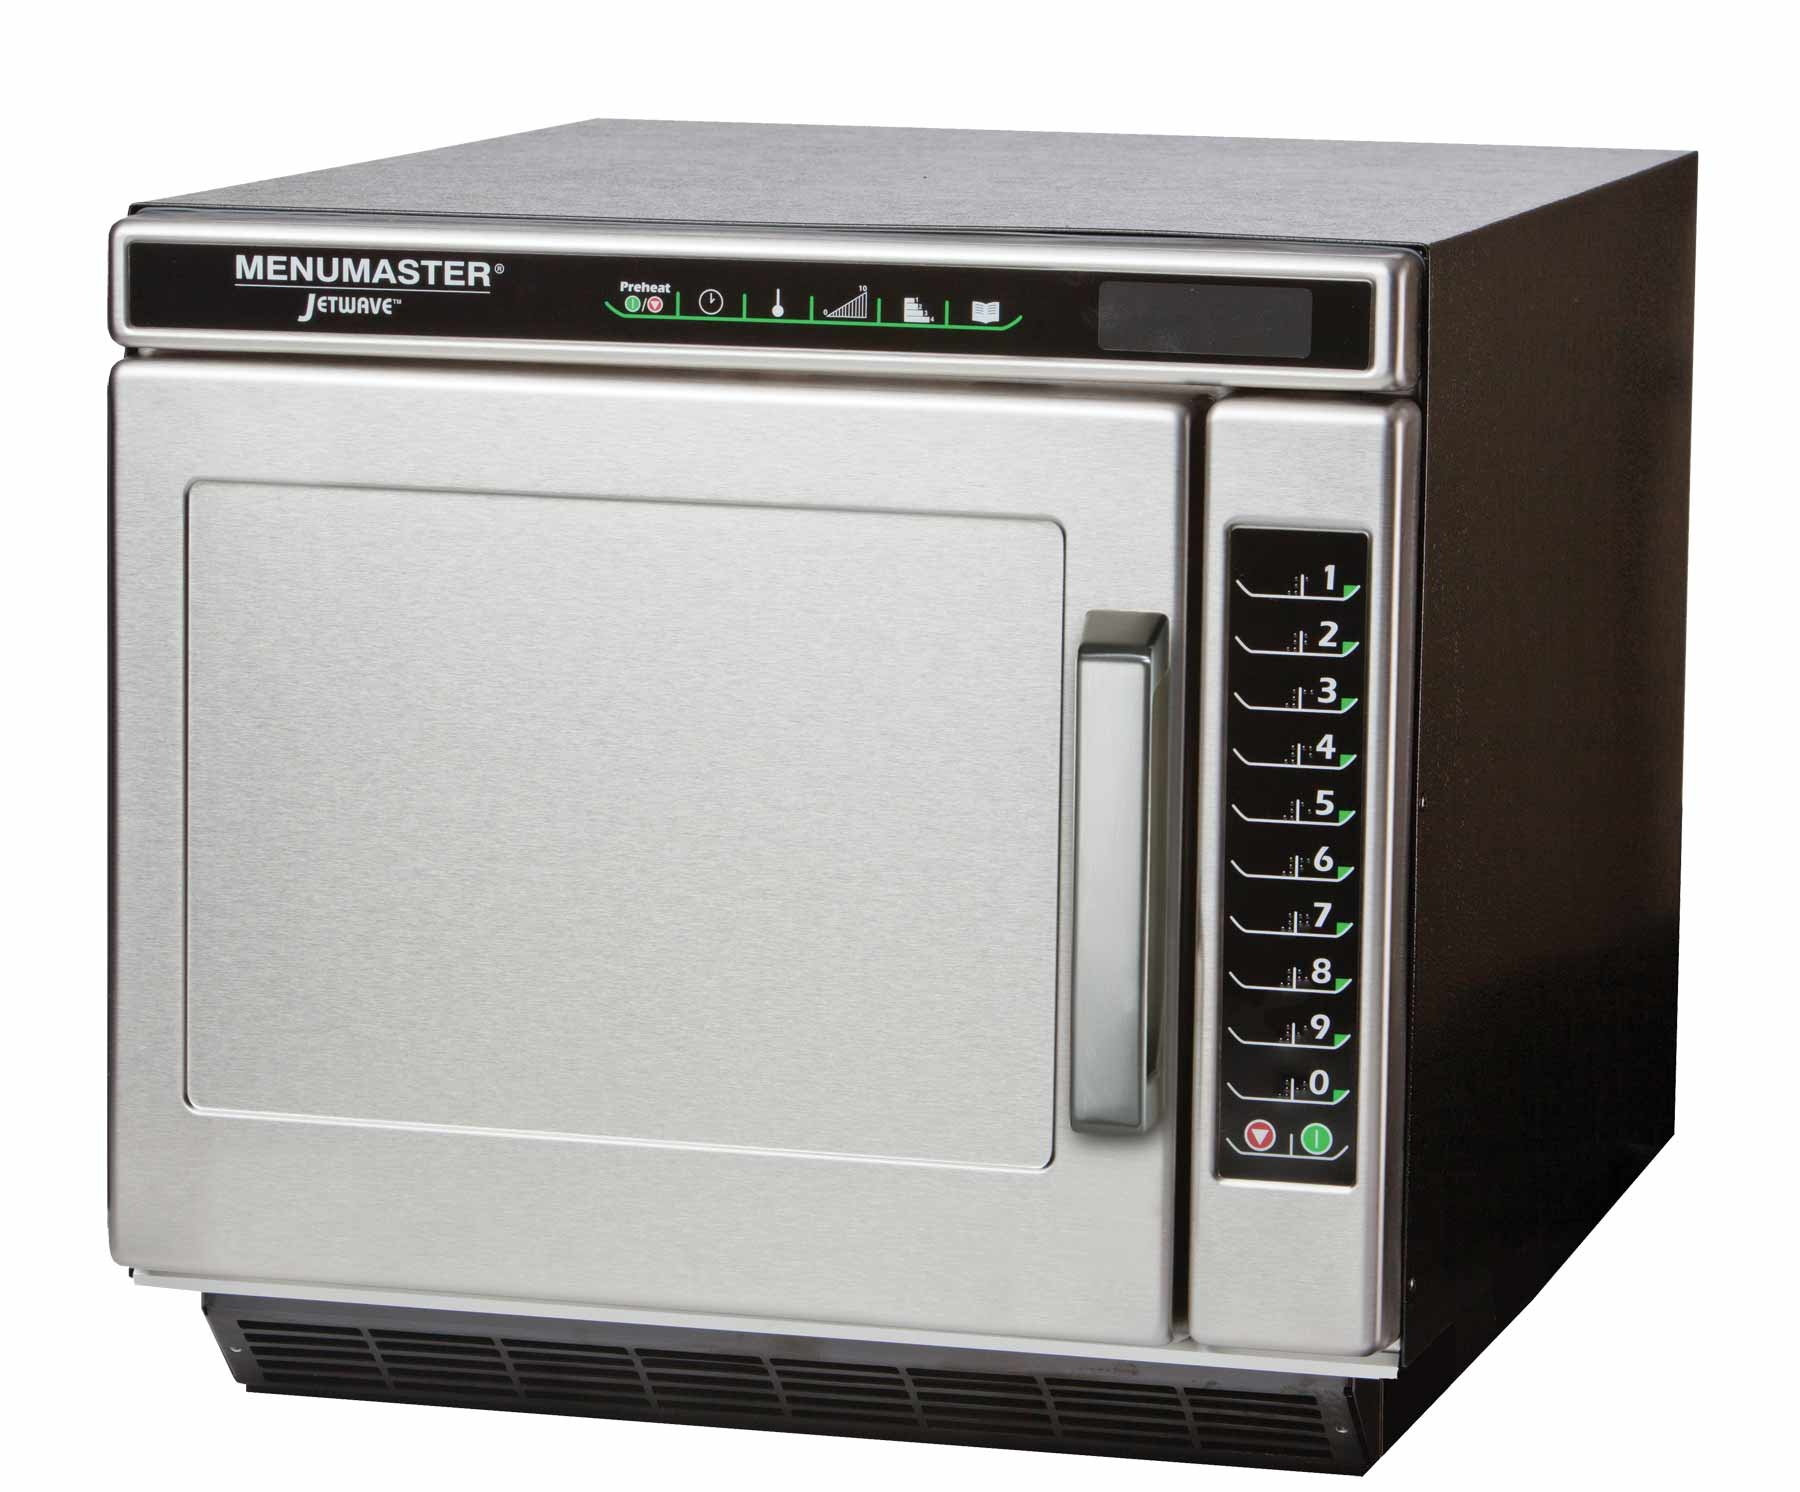 Commercial Microwave Oven Amana Jetwave Convection